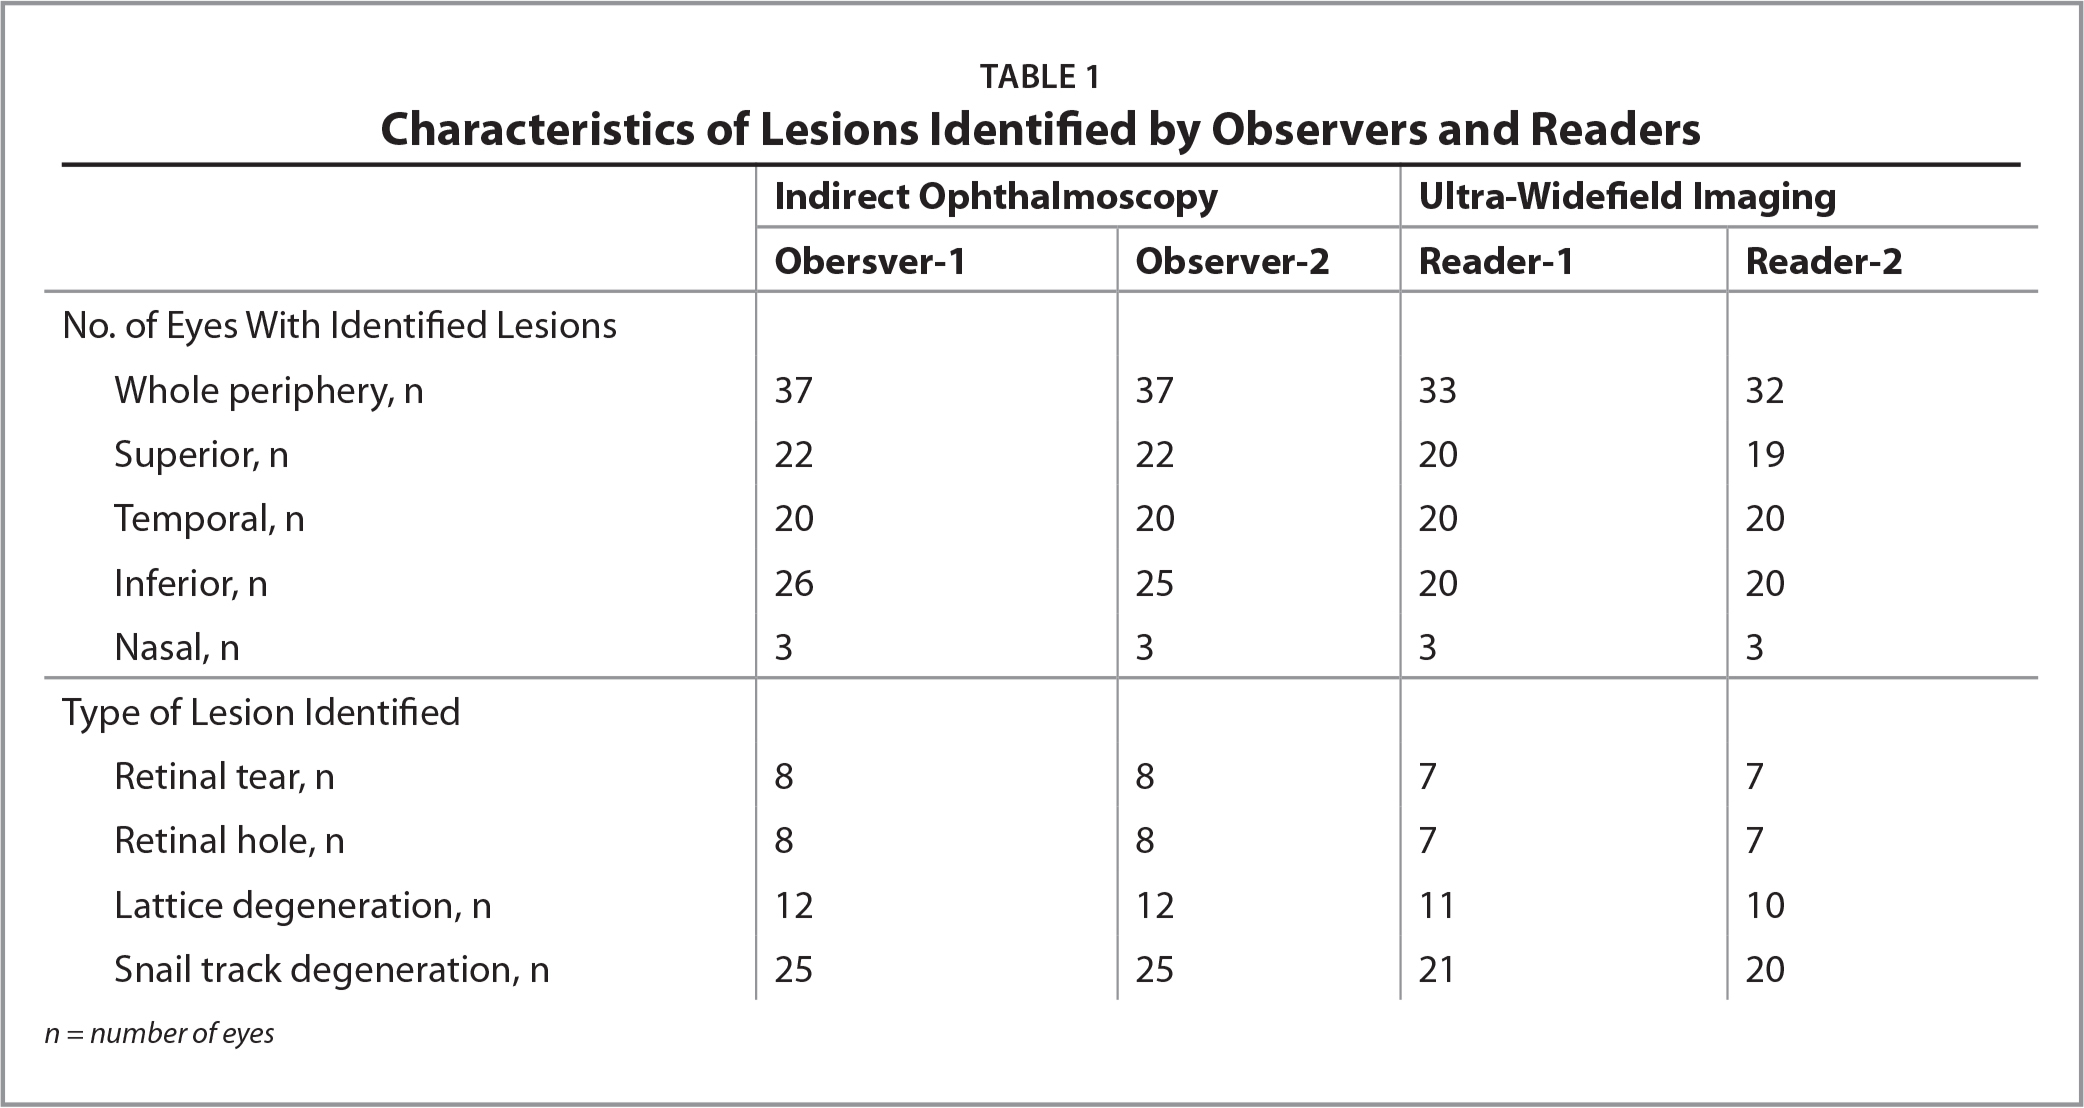 Characteristics of Lesions Identified by Observers and Readers